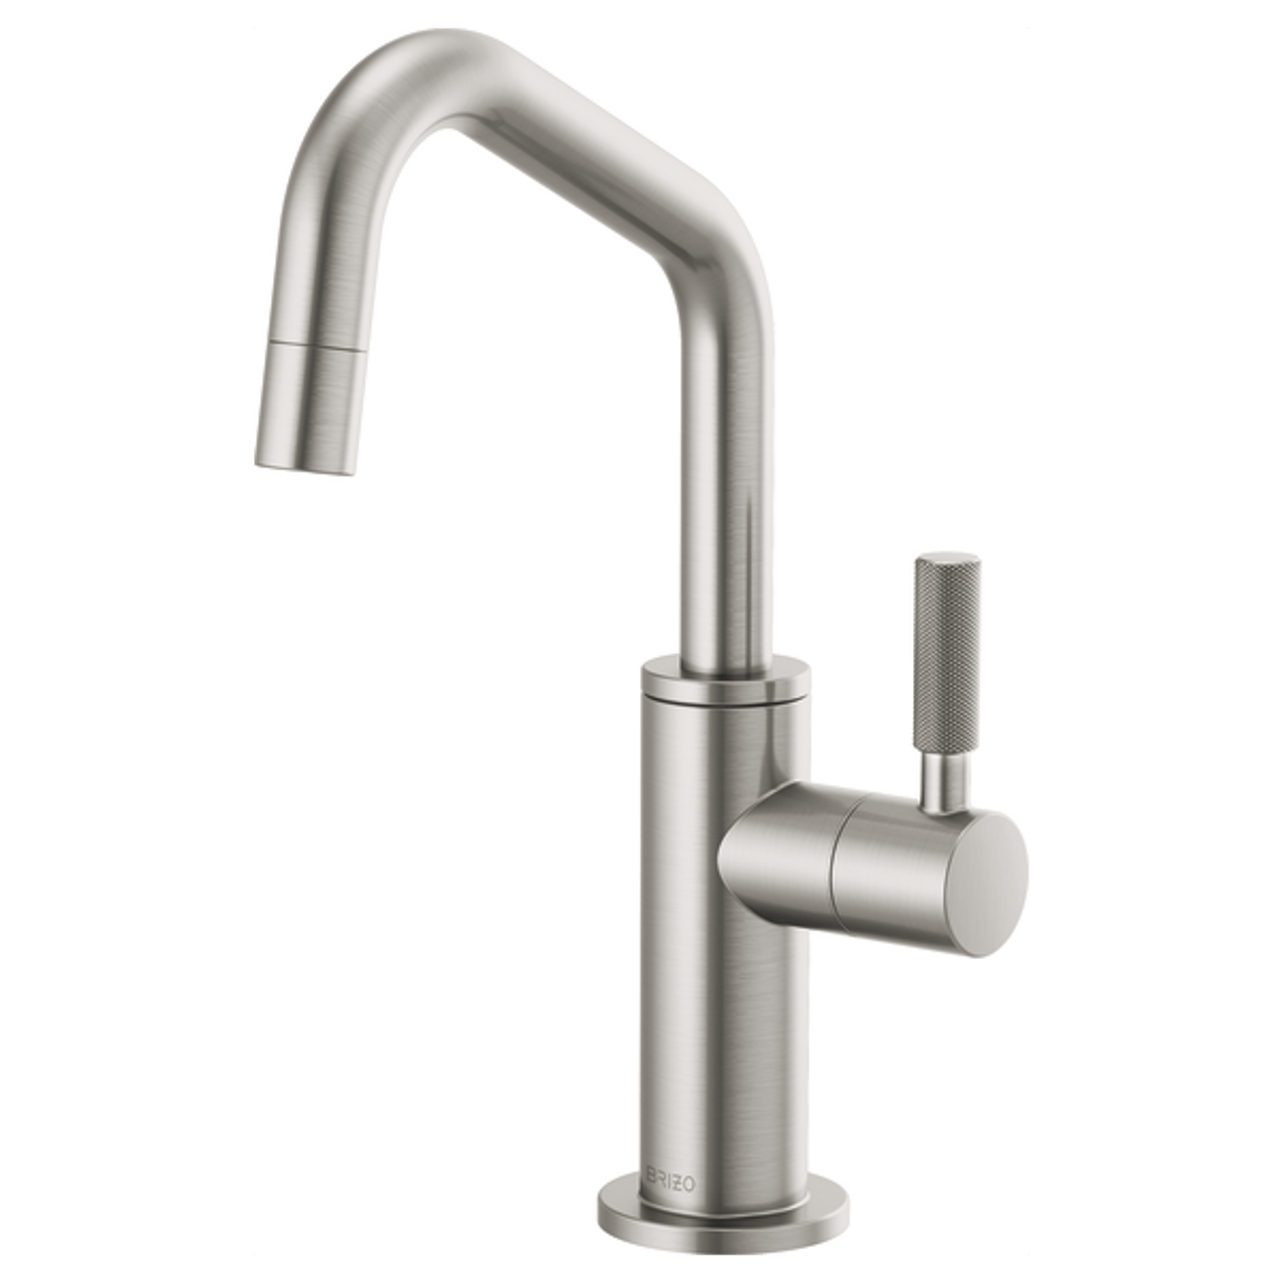 brizo litze beverage faucet with angled spout and knurled handle in stainless